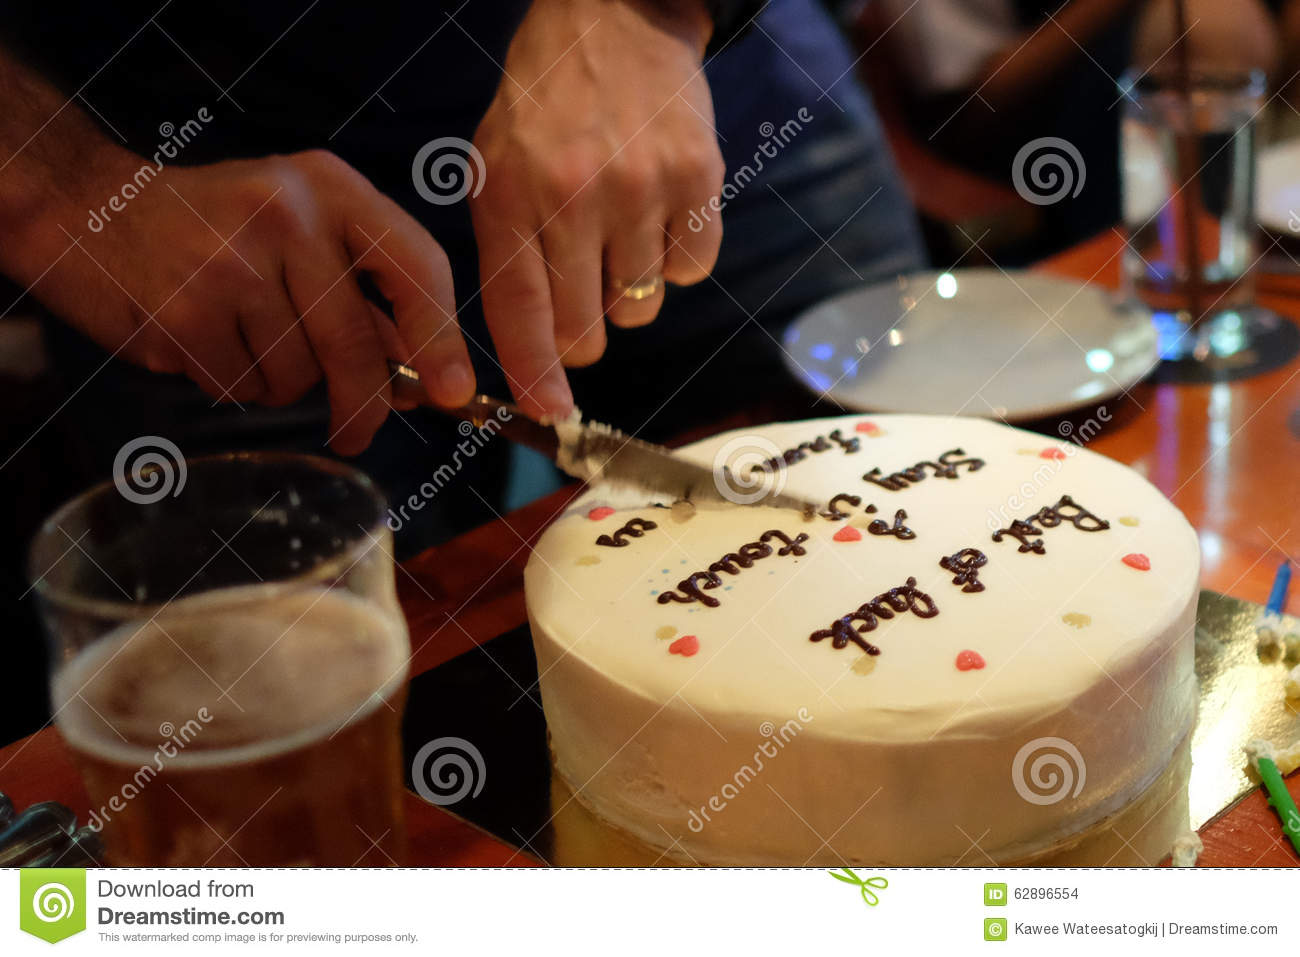 Man Cutting Birthday Cake In Dimmed Light Pub Party Concept